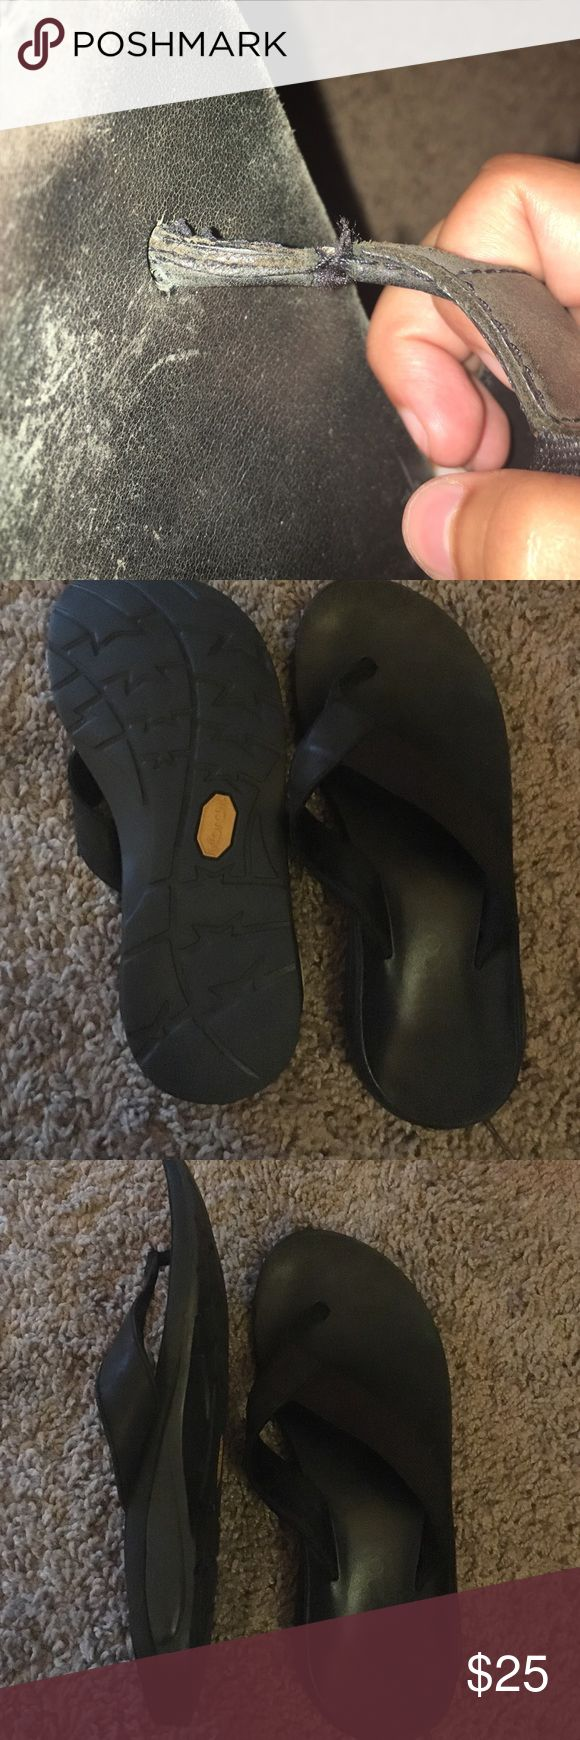 Chaco flip flops Brown chacos flip flops. Forgot I've had them. Small rip on the left sandal part Chacos Shoes Sandals